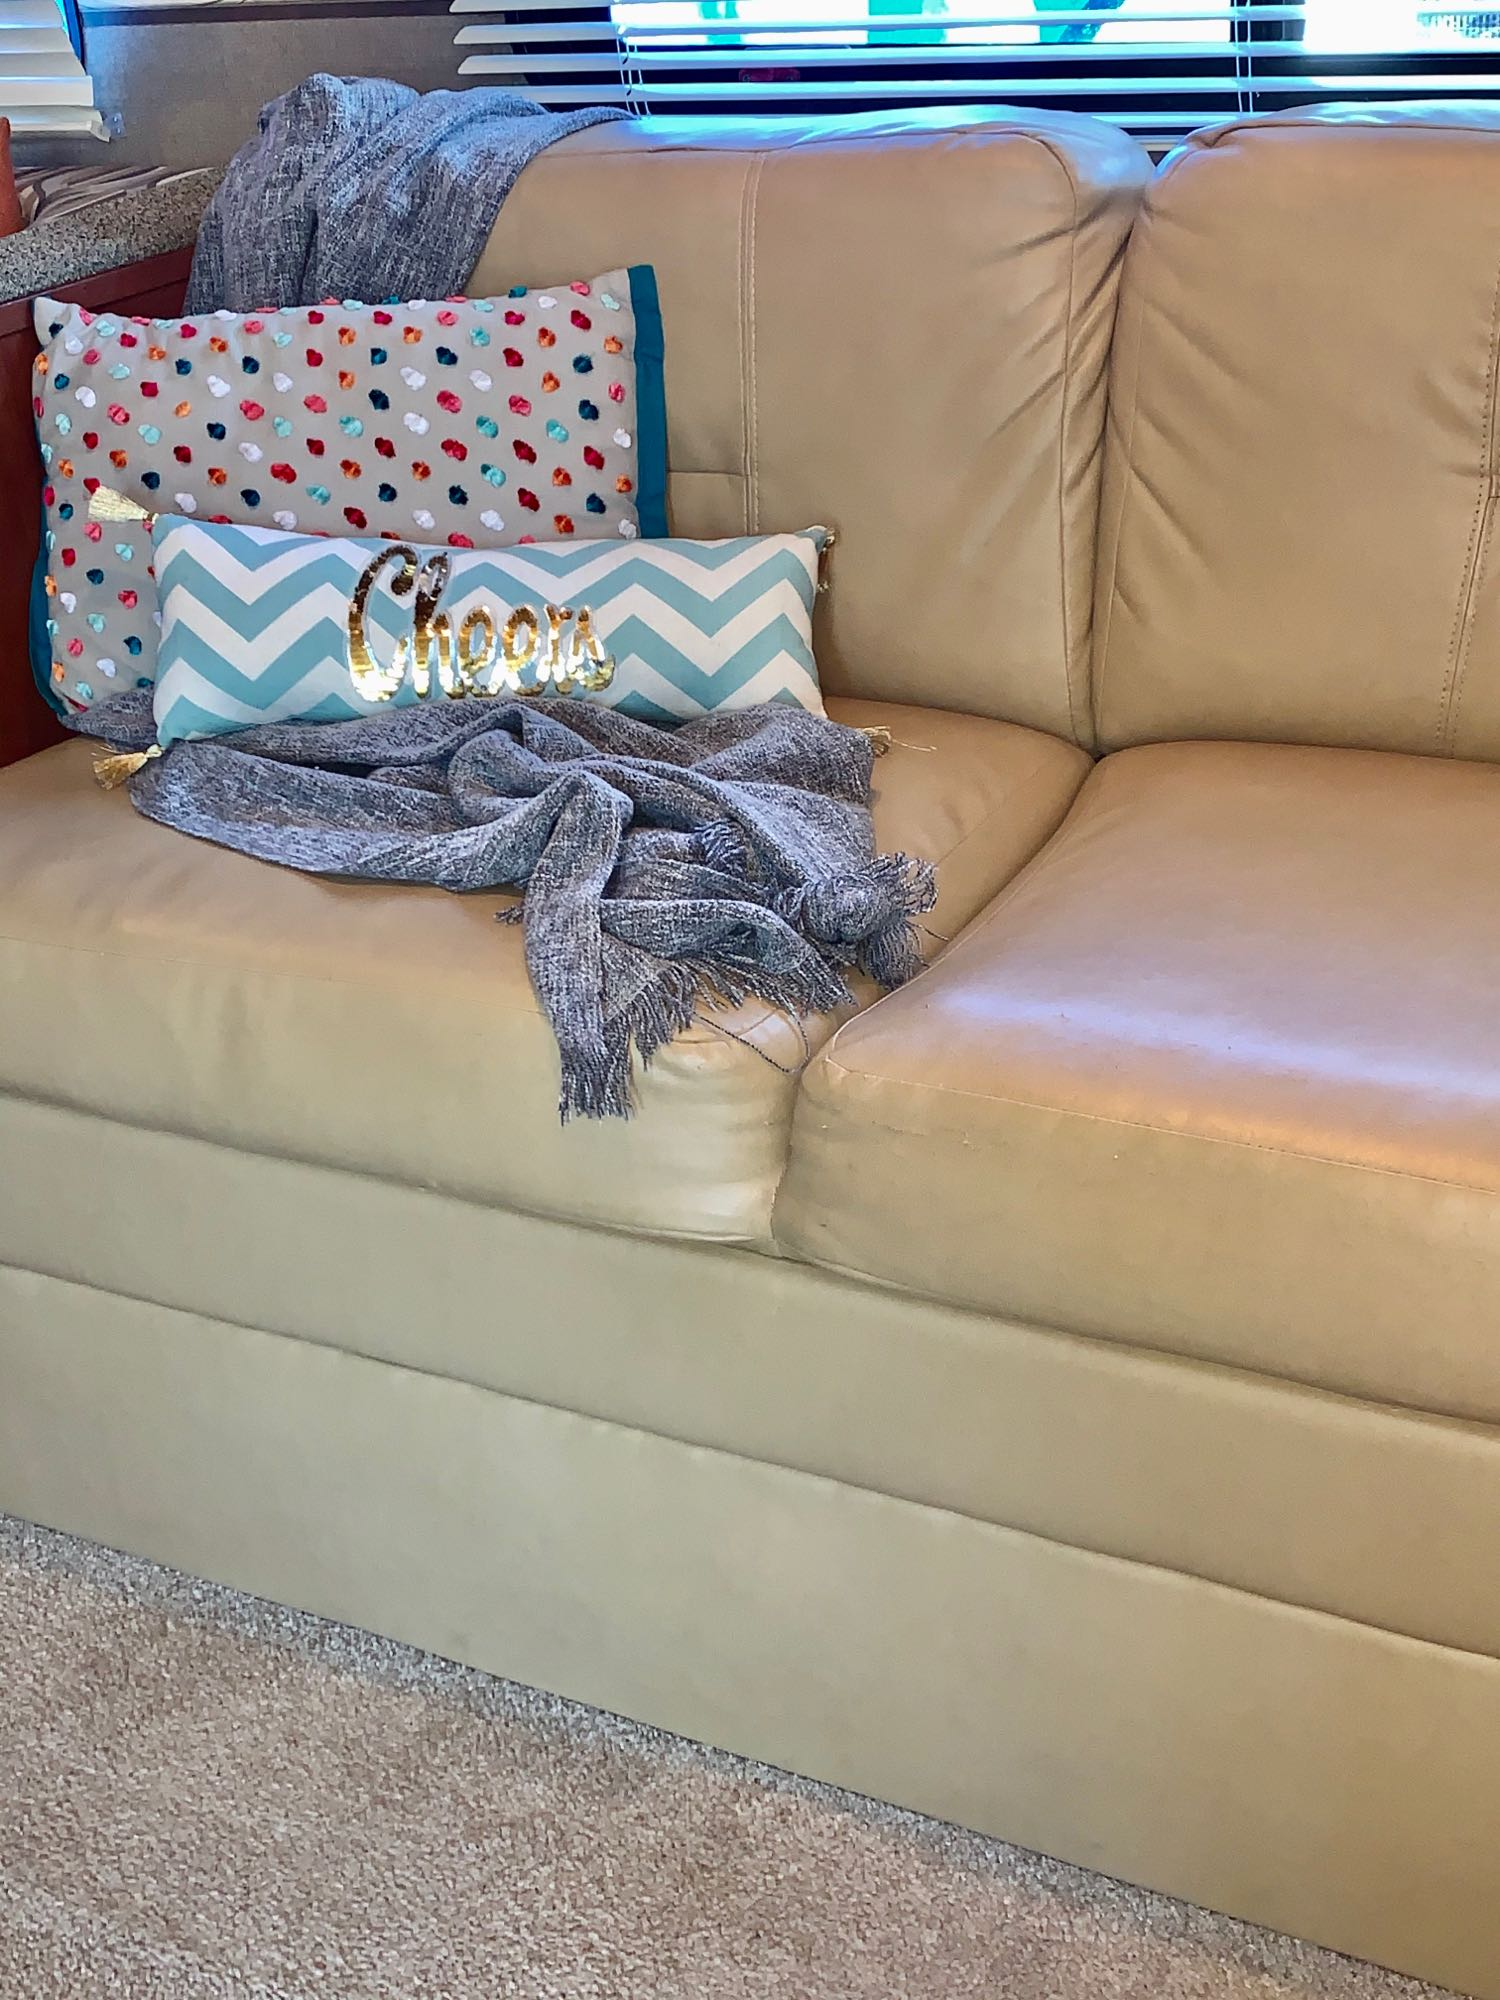 You enter into the interior and the slide-out makes it really comfy. This couch pulls out to a single bed for a child. We store extras under. Nice area to sit, chat, watch TV or read a book while you relax.. Palomino Canyon Cat 2015